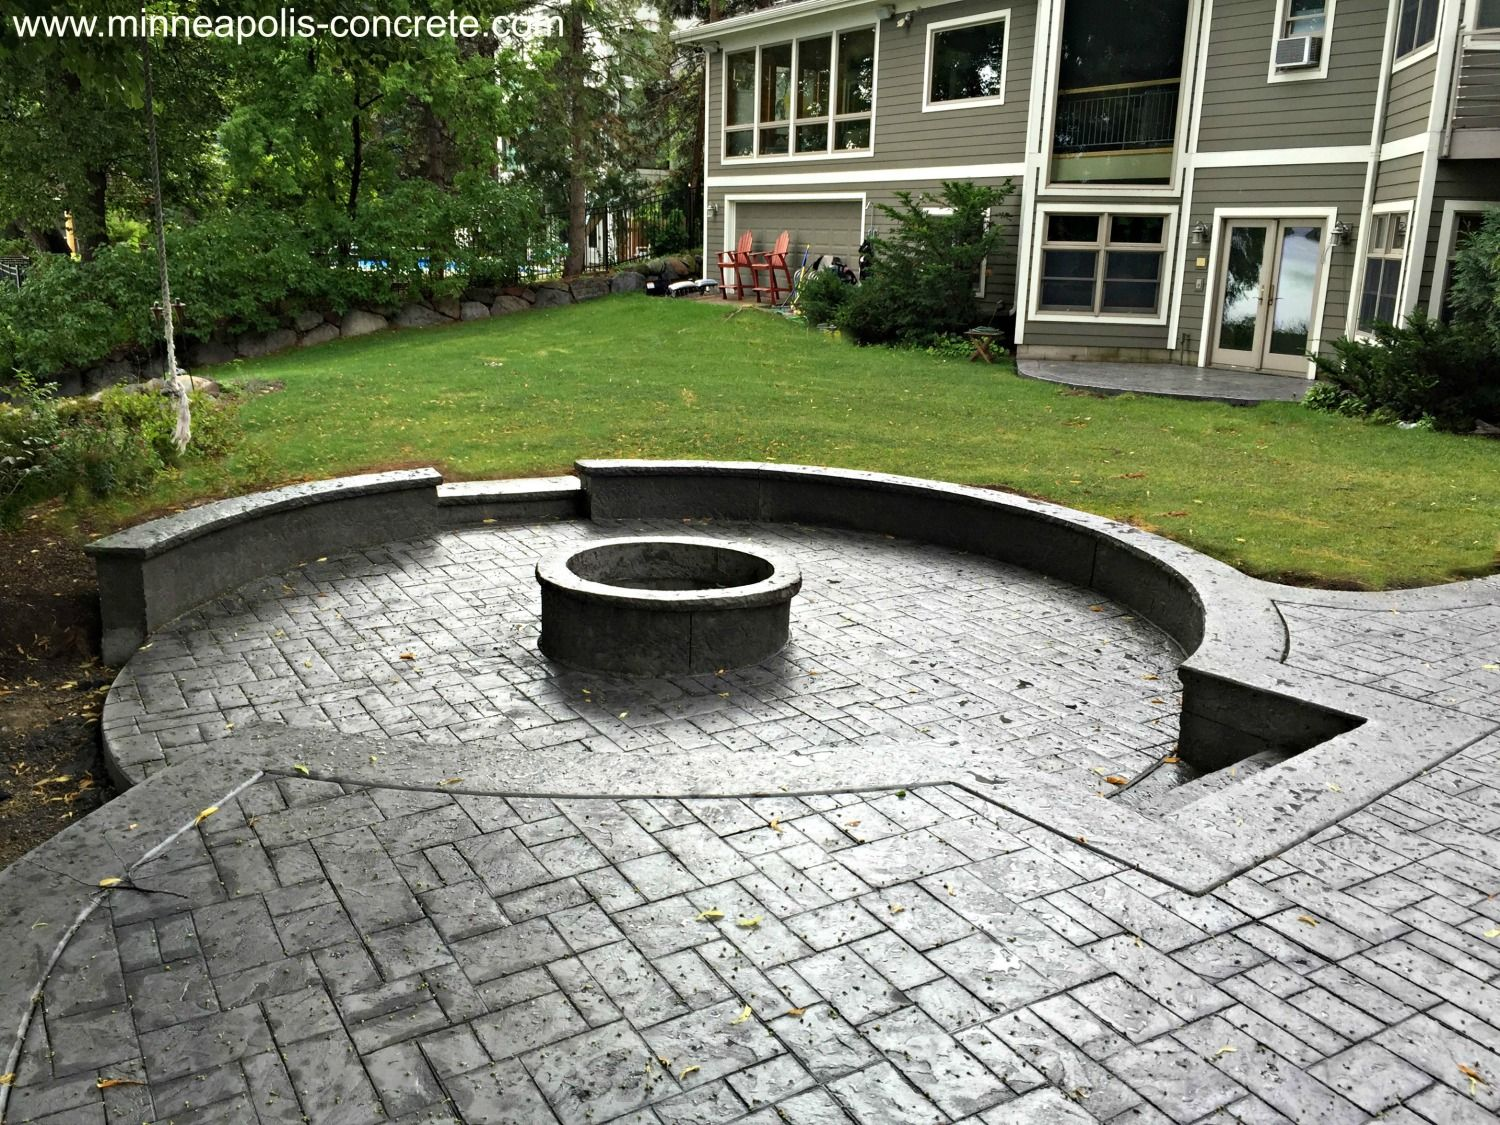 Stamped Concrete Patio With Raised Firepit   Www.minneapolis Concrete.com